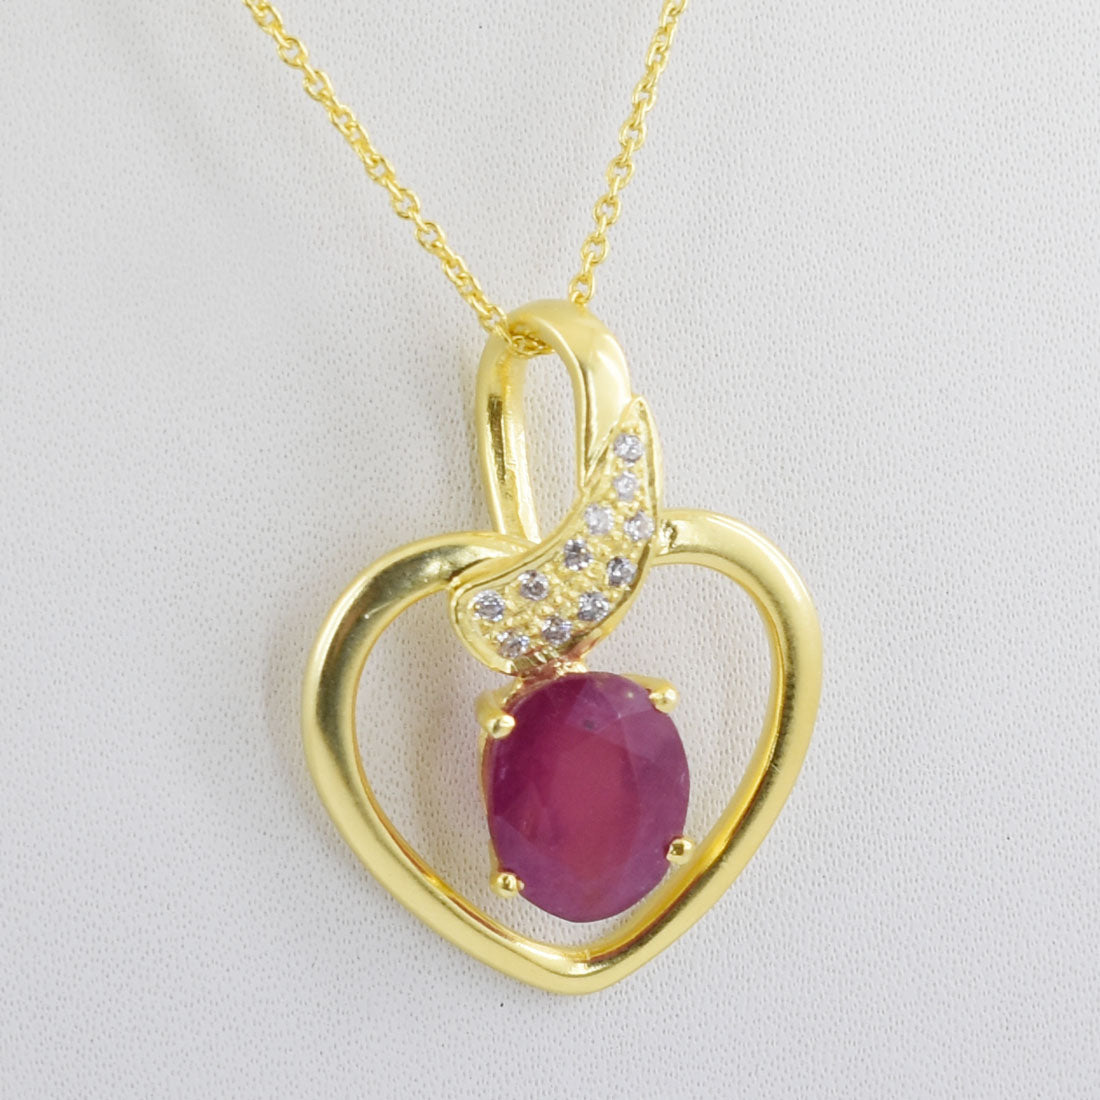 Wear Birthstone Pendant to Change Your Life